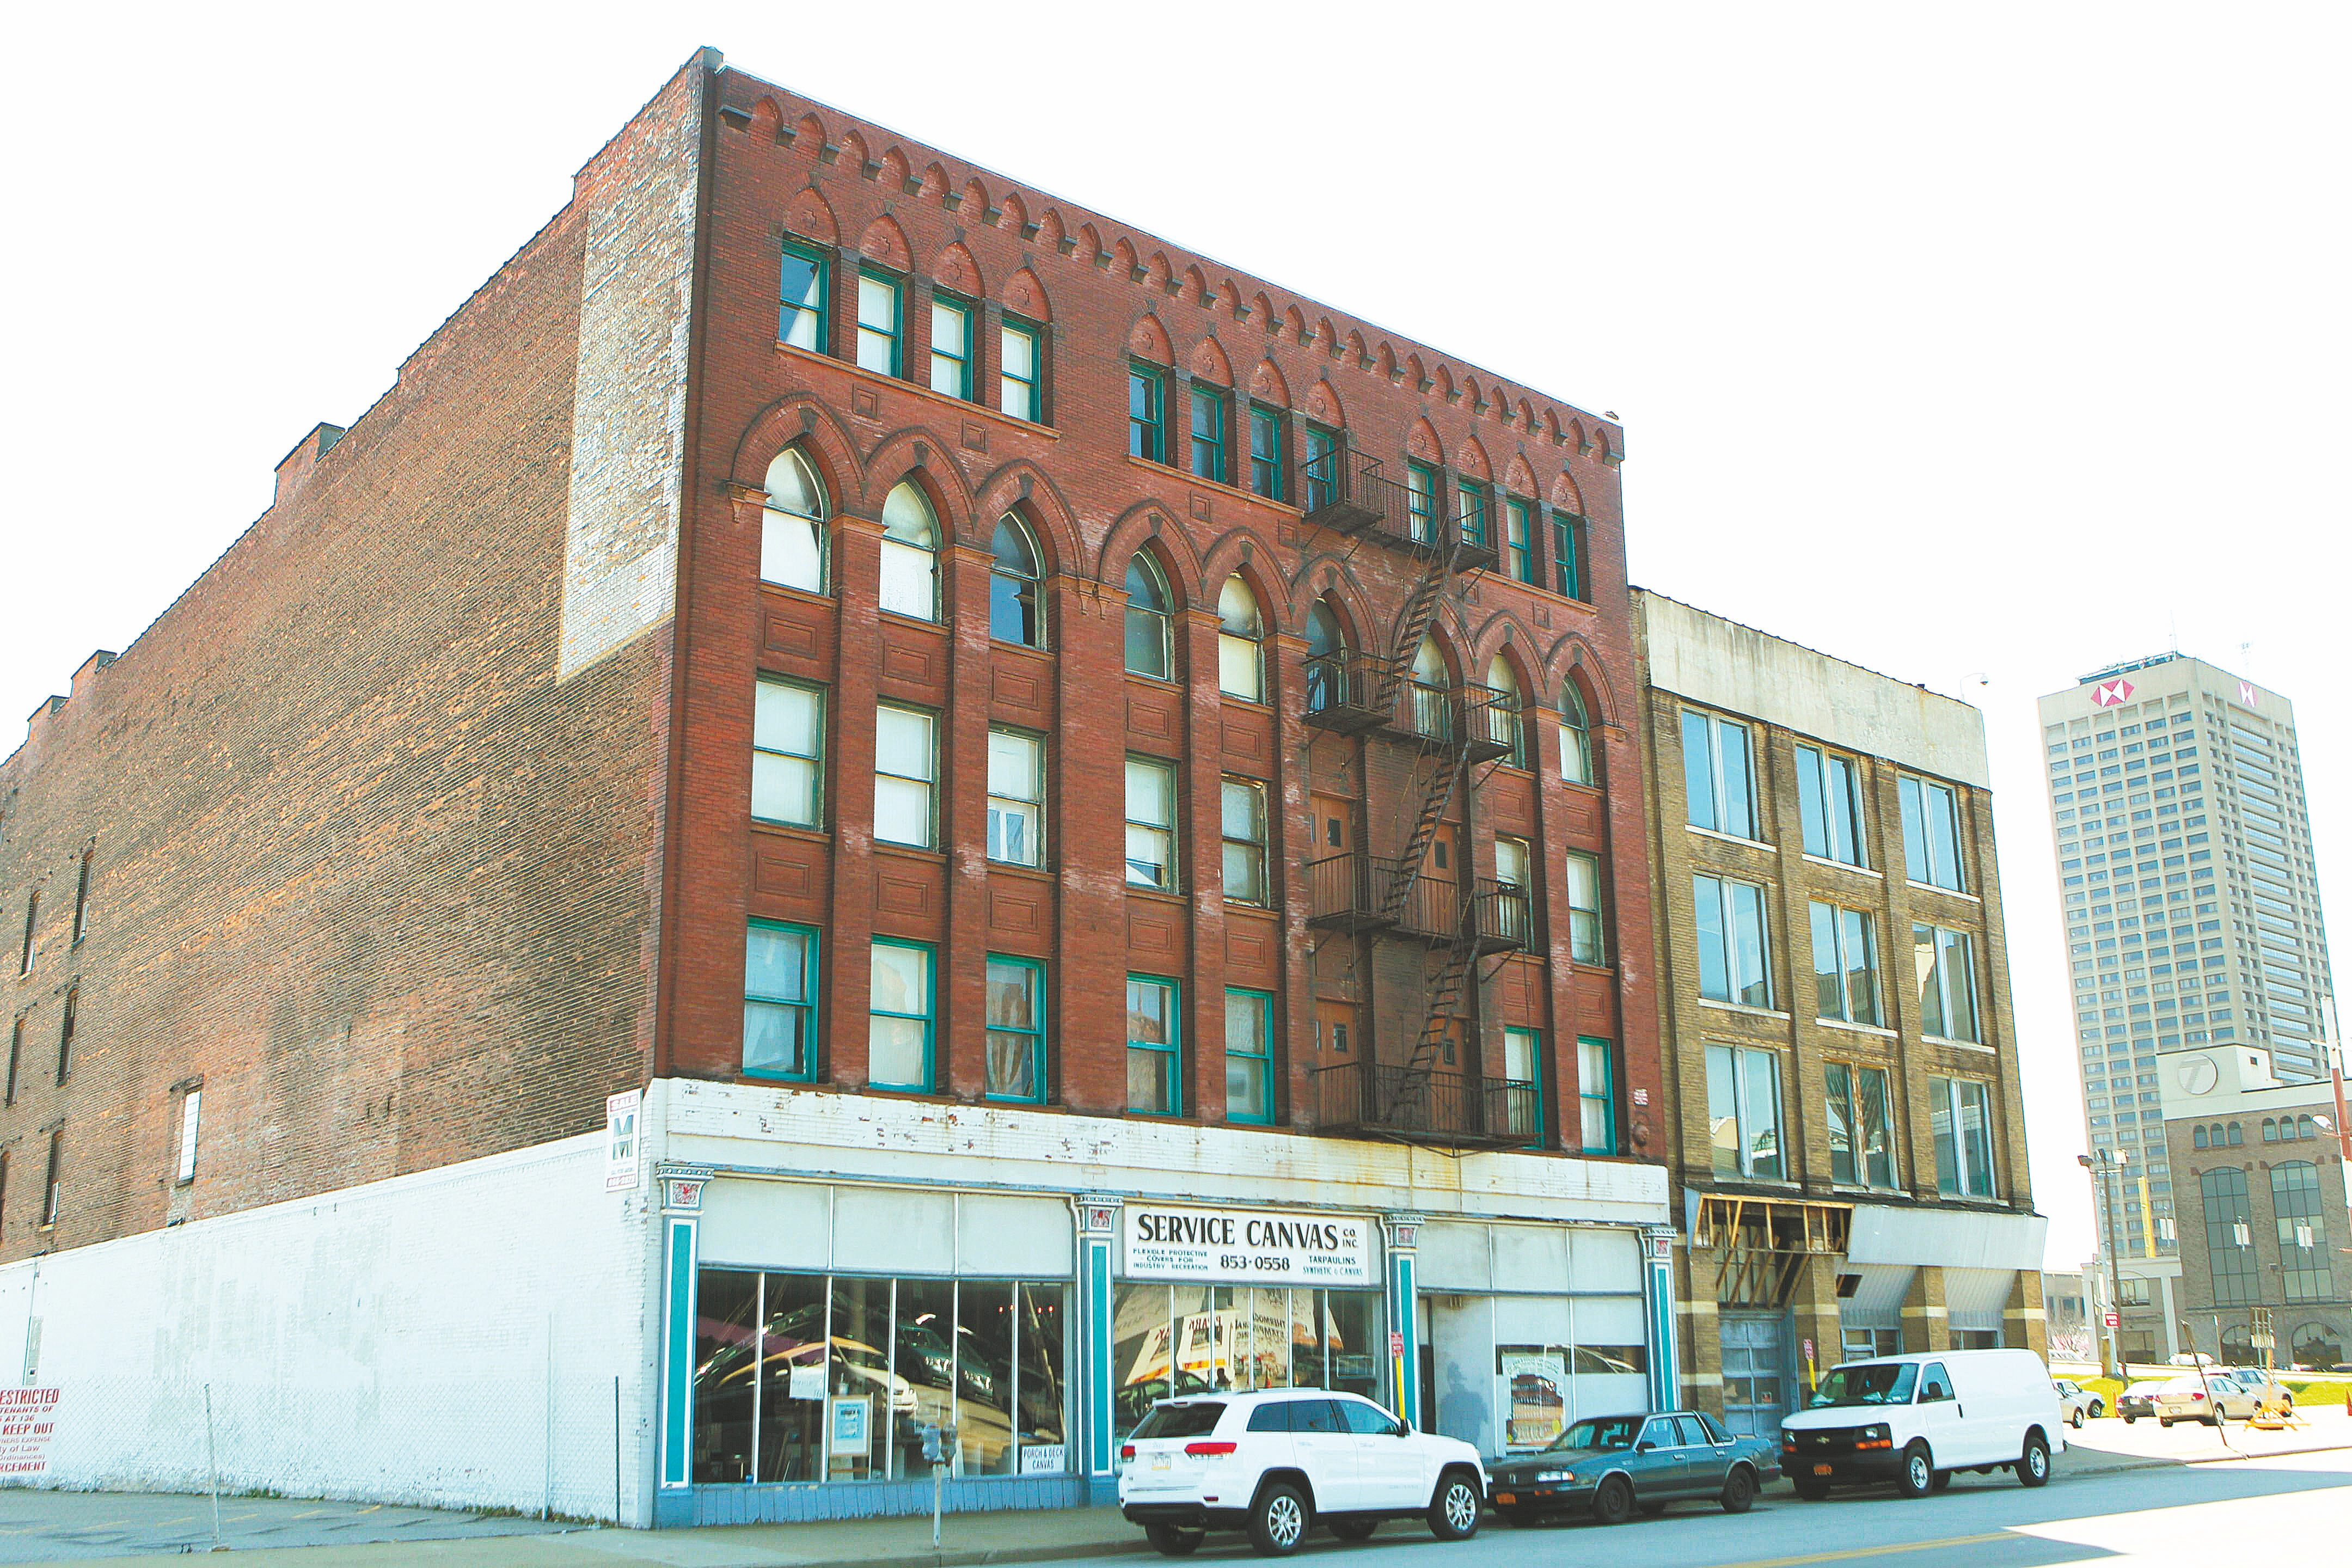 Local developer Jake Schneider is making these buildings at 145 and 149 Swan St. in Buffalo into apartments with the help of tax breaks from the Erie County Industrial Development Agency.